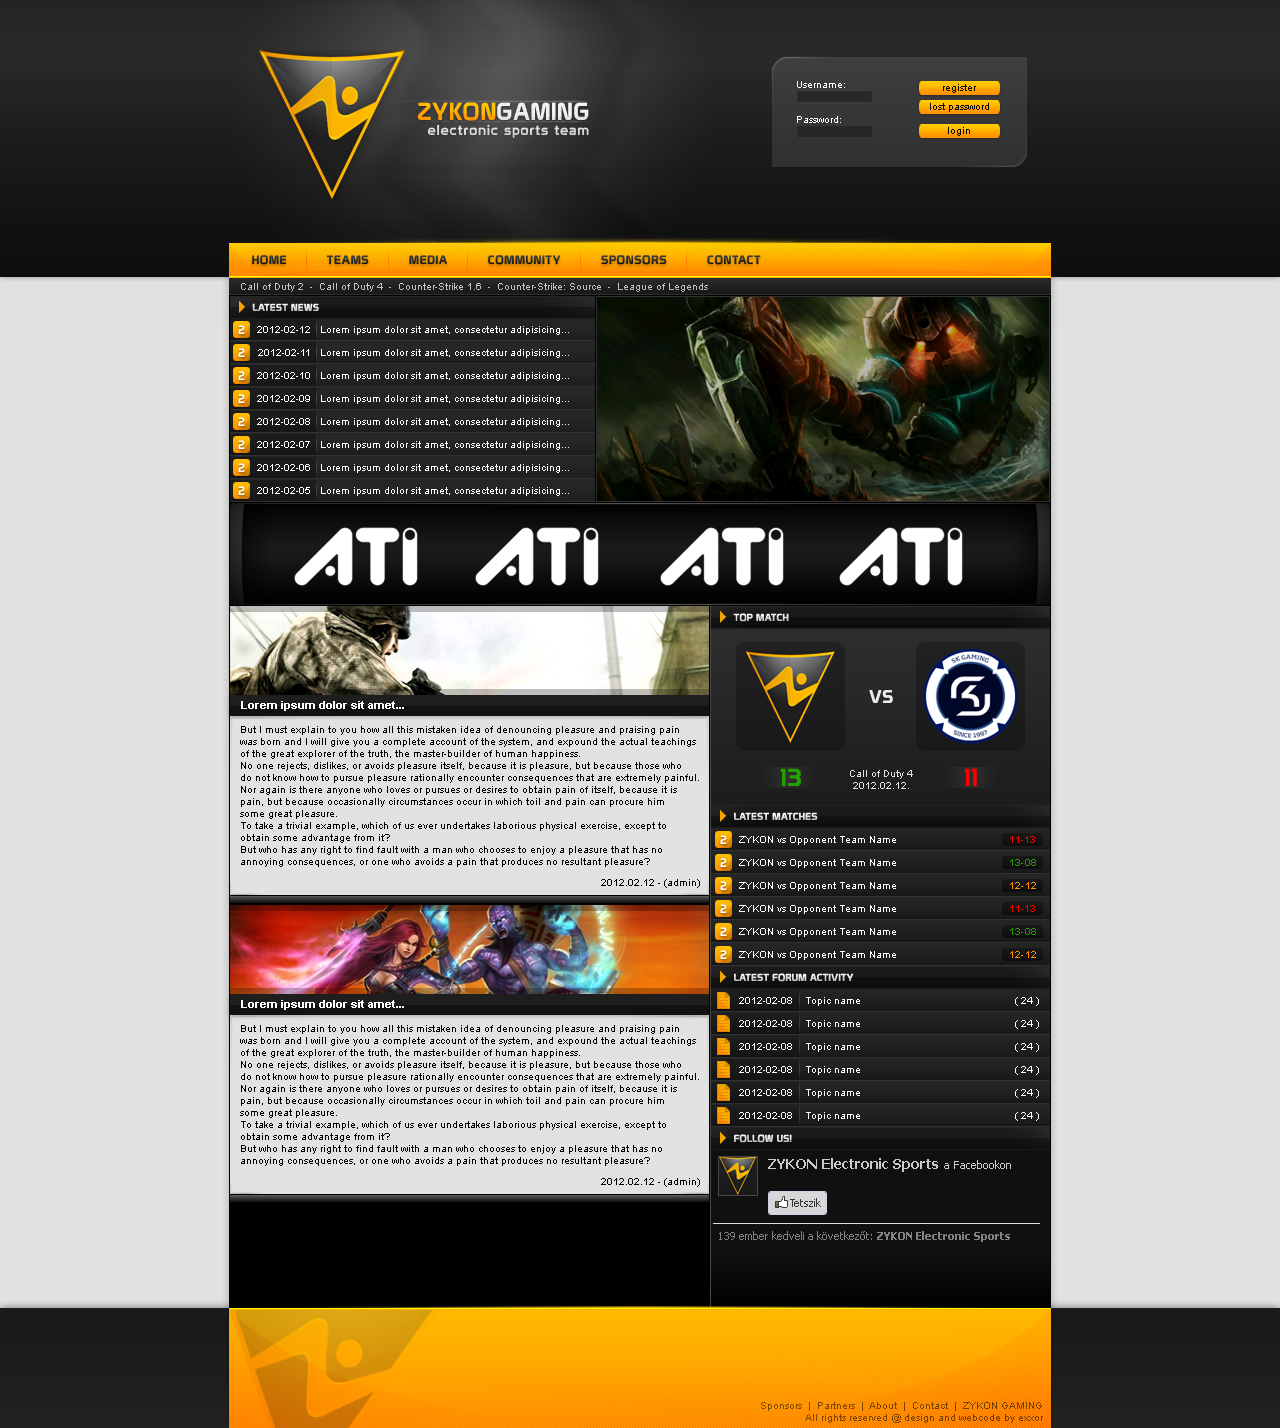 ZYKON gaming webdesign by exxor89 on DeviantArt